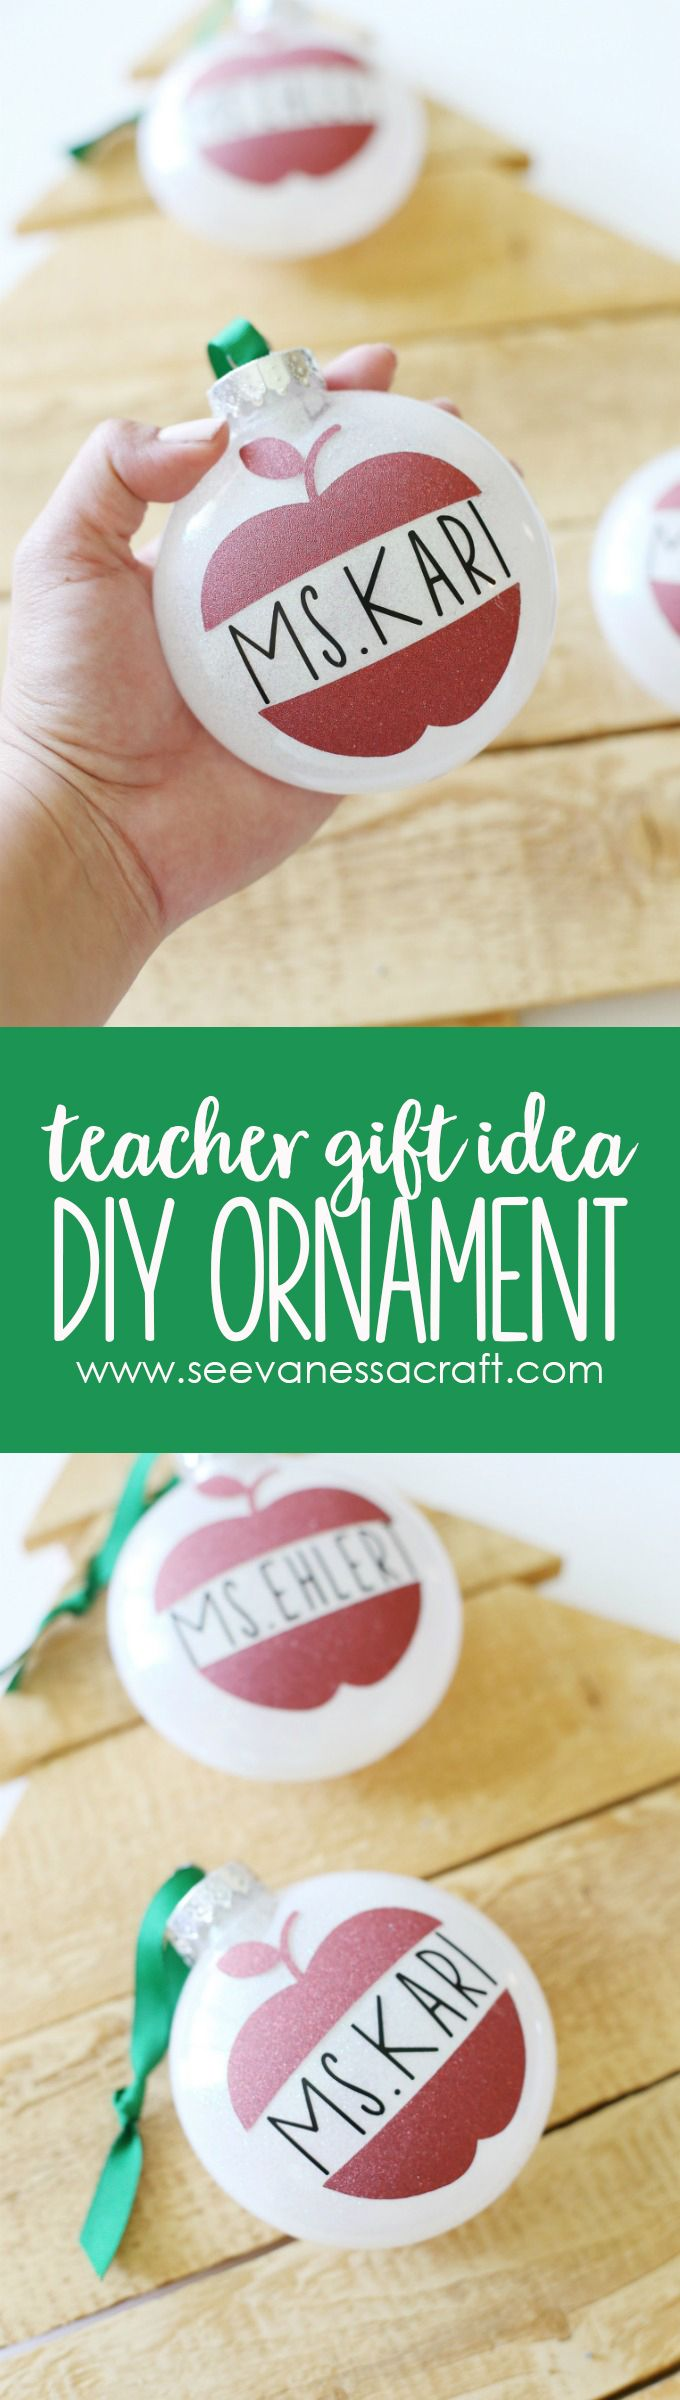 Getting a jumpstart on Christmas crafting with these DIY @Cricut glitter vinyl teacher ornaments! They'd make the perfect teacher holiday gift! #ad#CricutMade #CricutHoliday